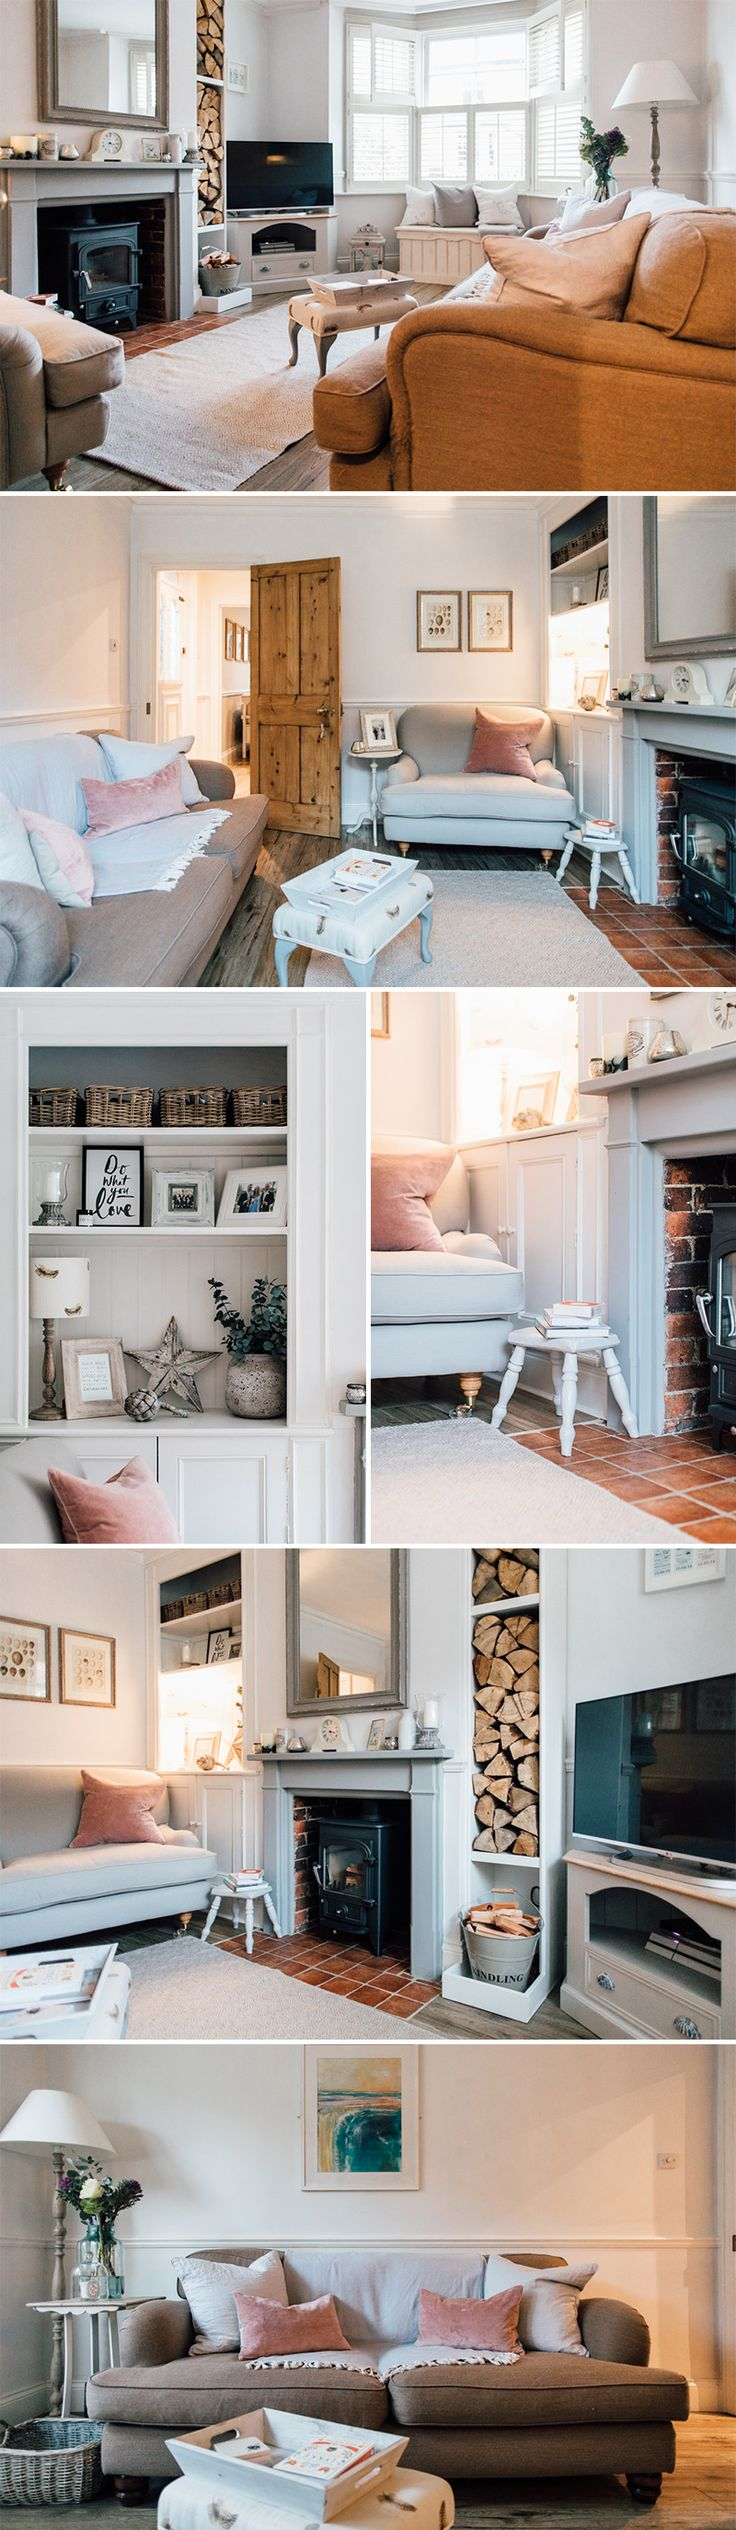 Vintage Milk Stool | Log Burner And Stacked Logs | Alcove Shelving Shelf Styling | Kindling Wood And Log Store | Cosy Modern Country Living Room | Plantation Shutters | bay window chest | how to style a mantle piece | pink living room accessories | neutral sofa | How to style a neutral sofa | Snuggler Seat | How to style a love seat | how to style a coffee table | living room window shutters | Modern country decor